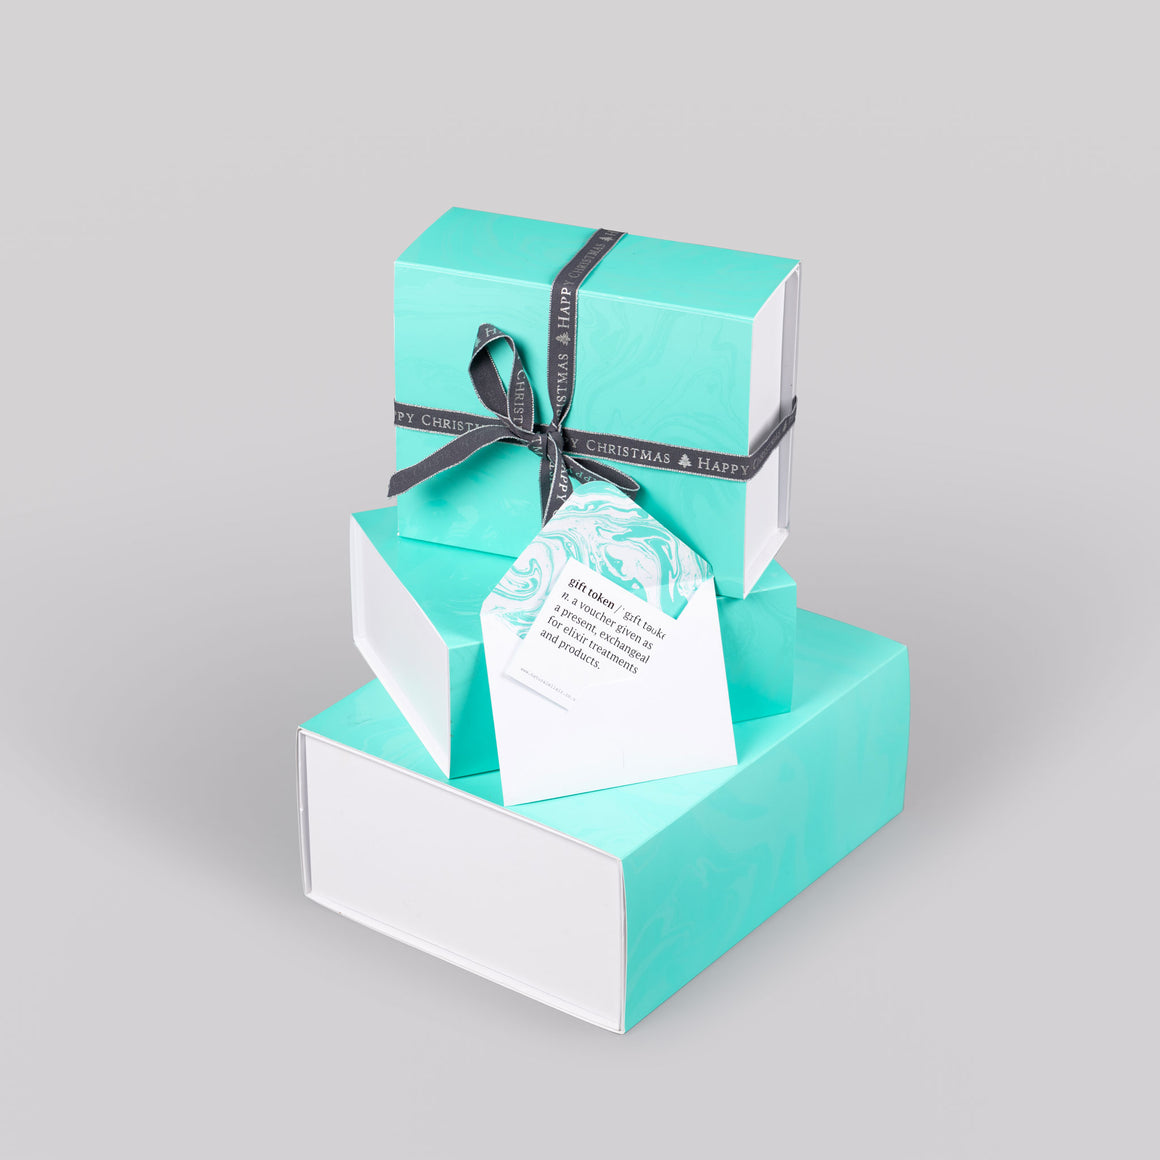 ELIXIR VOUCHER, CHOCOLATES & CANDLE Gift box